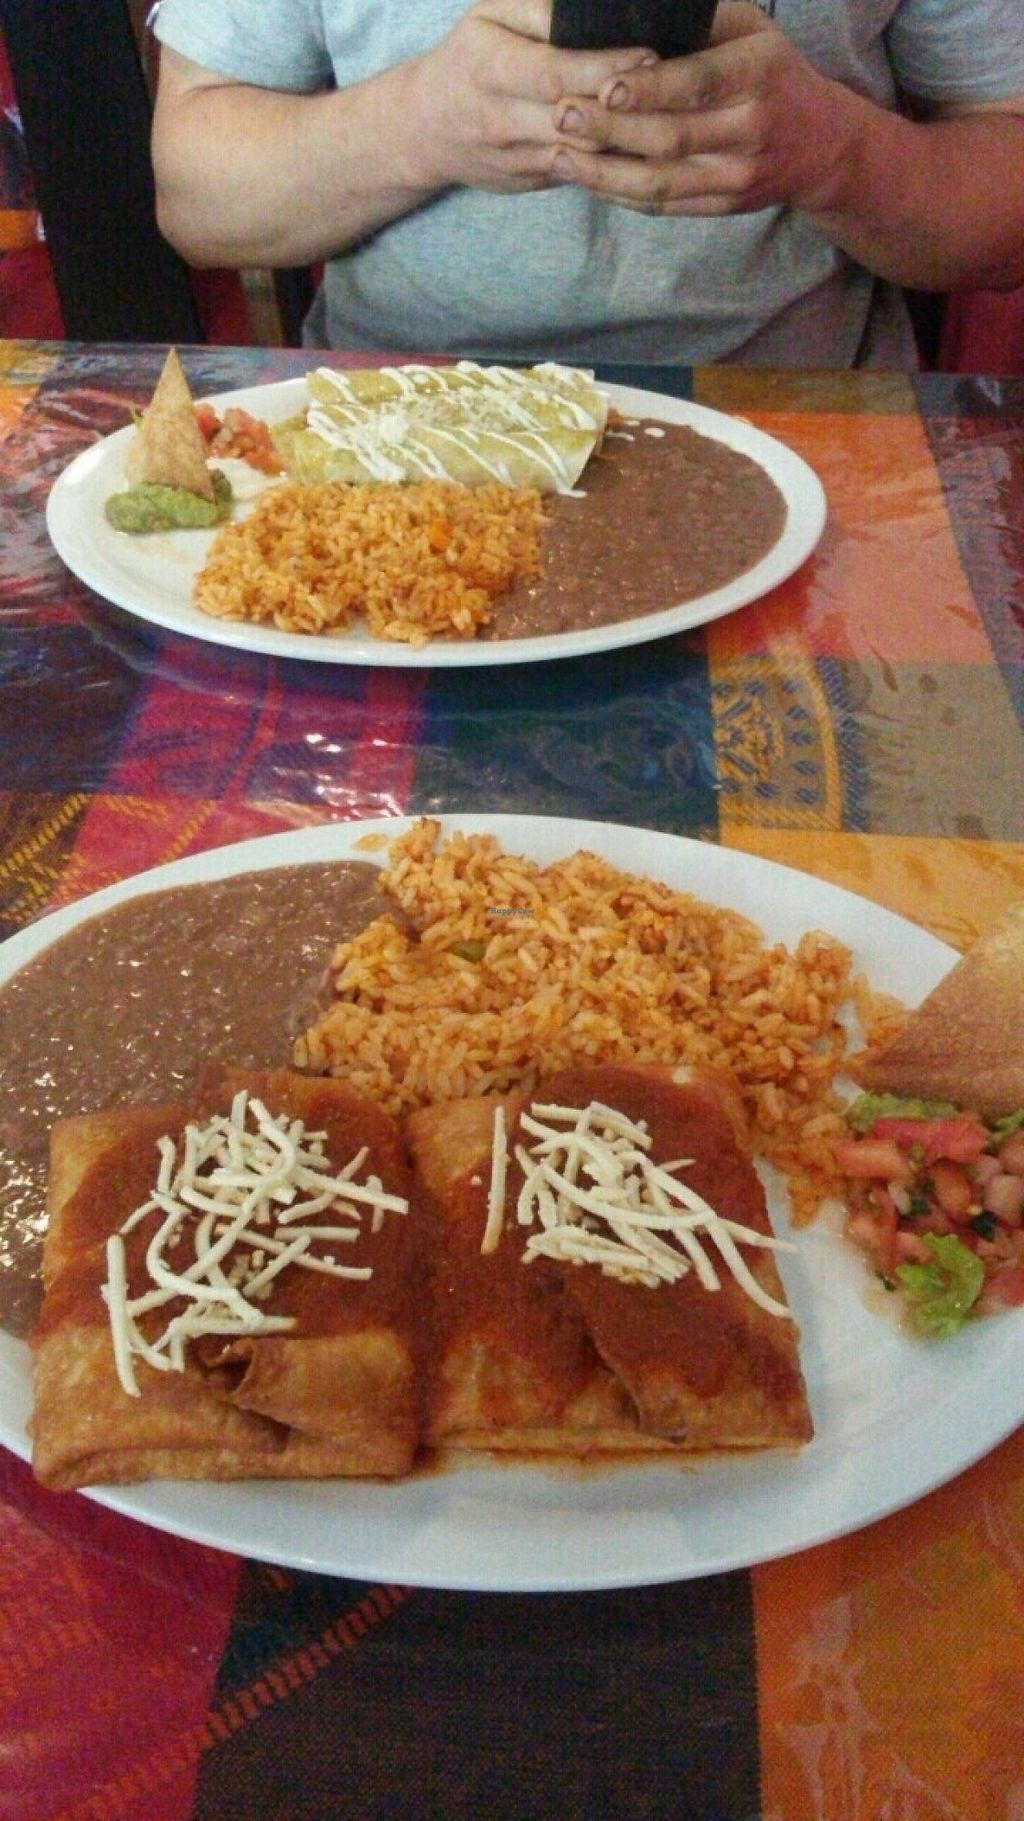 "Photo of Cantina Vallarta  by <a href=""/members/profile/Totallynotvegan"">Totallynotvegan</a> <br/>Chimichangas and enchilladas <br/> May 17, 2017  - <a href='/contact/abuse/image/71925/259603'>Report</a>"